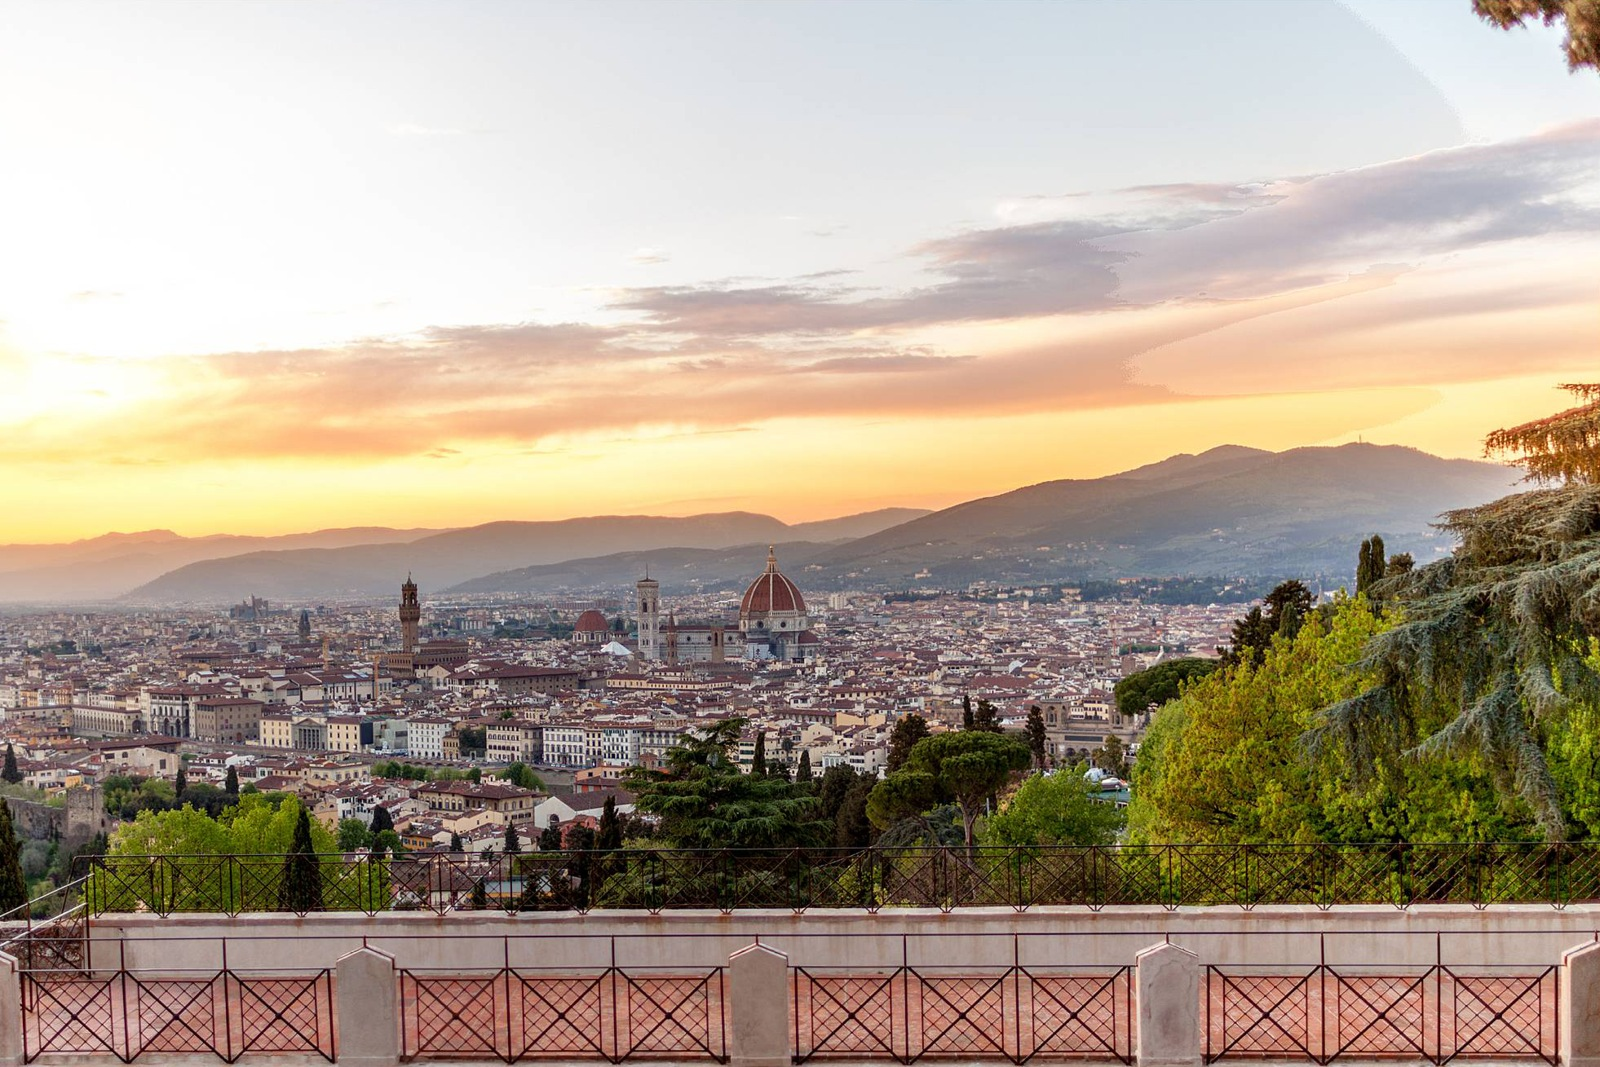 Sunset over Florence city